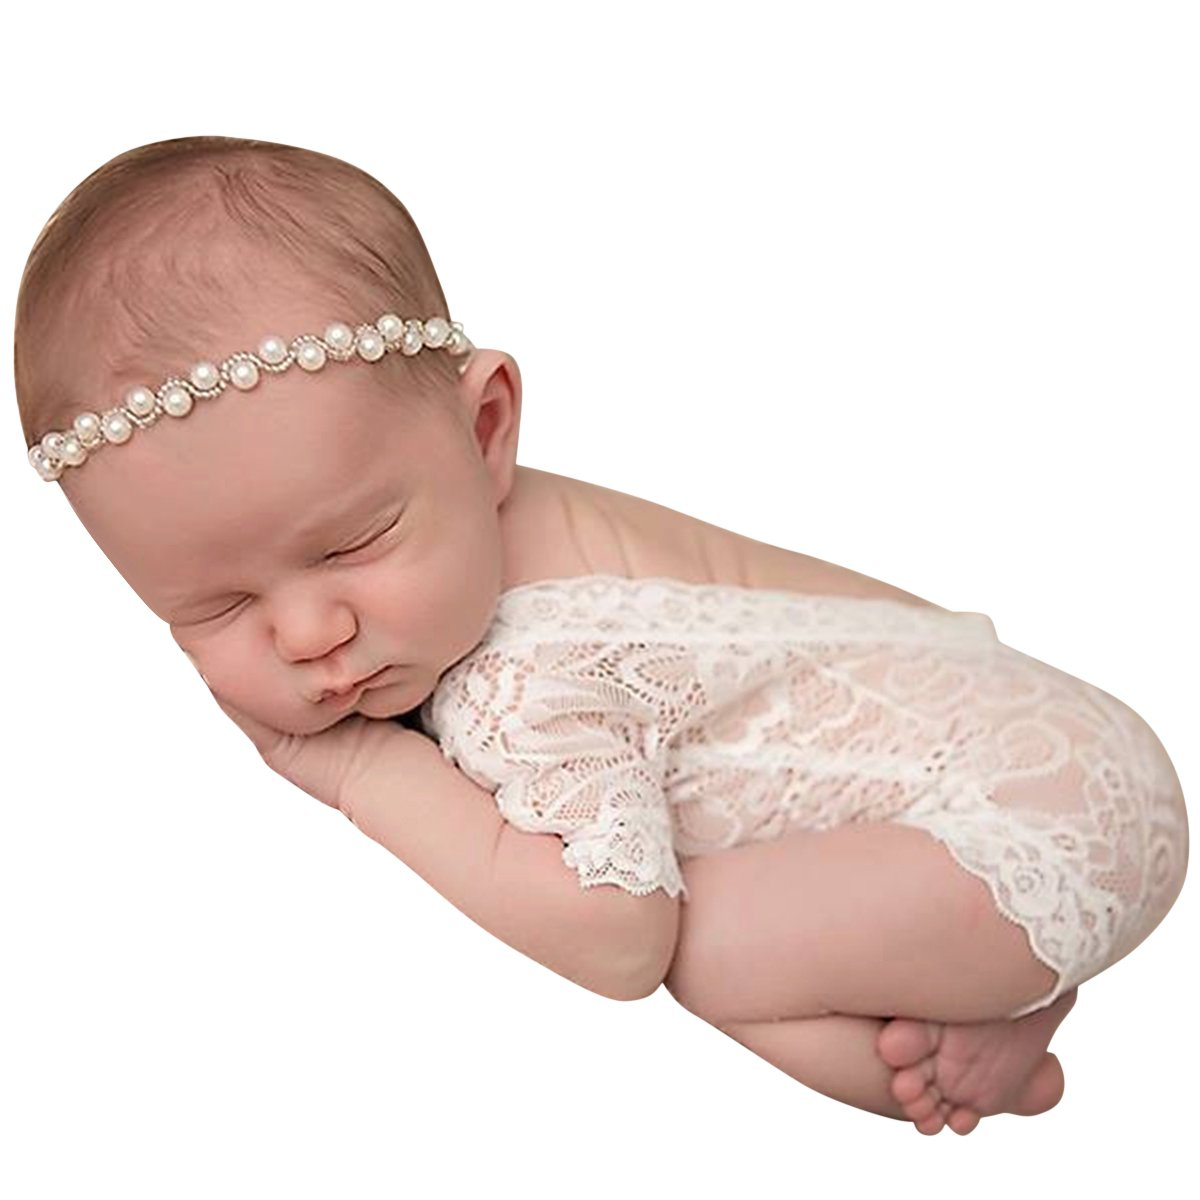 Newborn Infant Girl Lace Floral Romper Photography Prop Photo Shoot